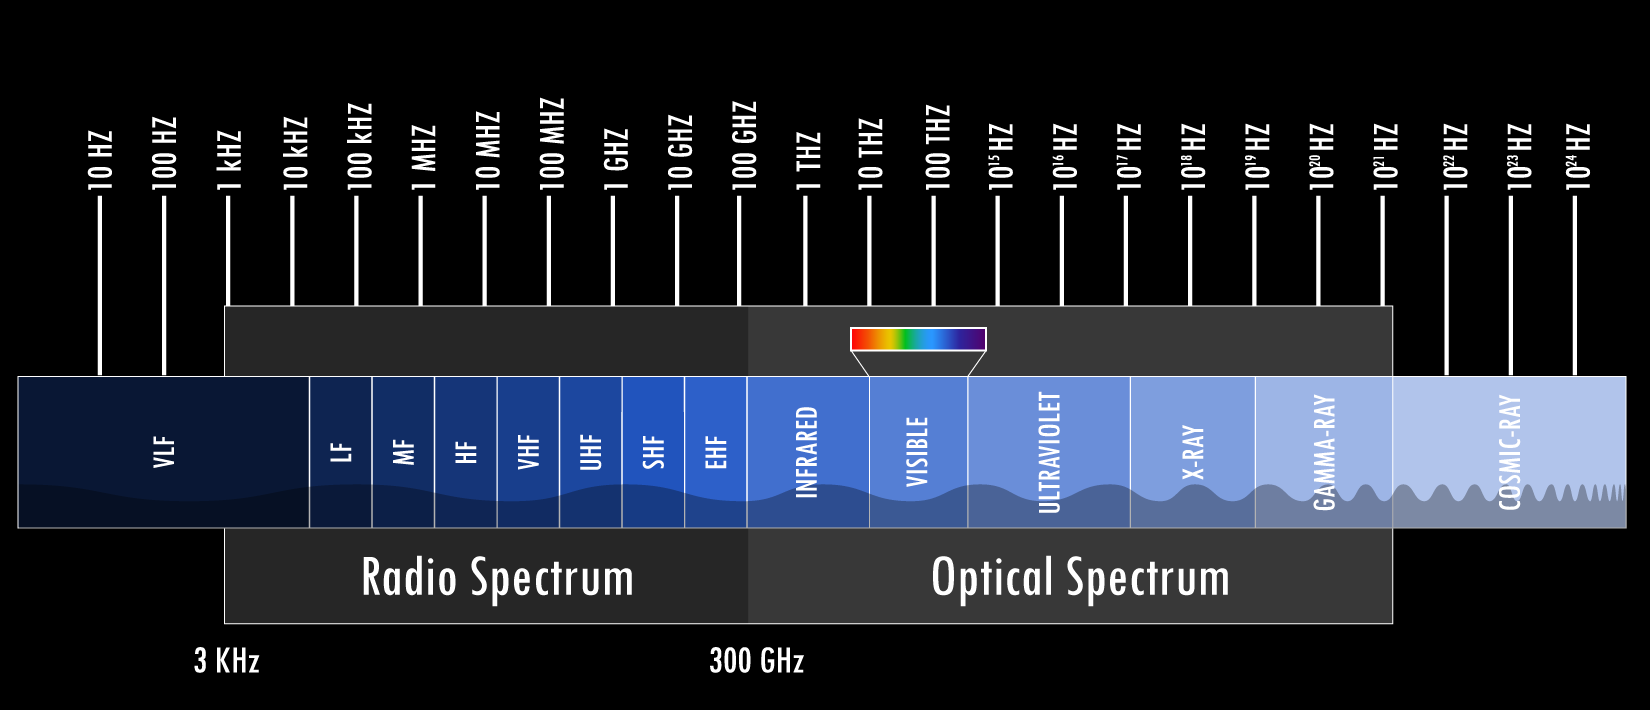 What are the spectrum band designators and bandwidths? | NASA